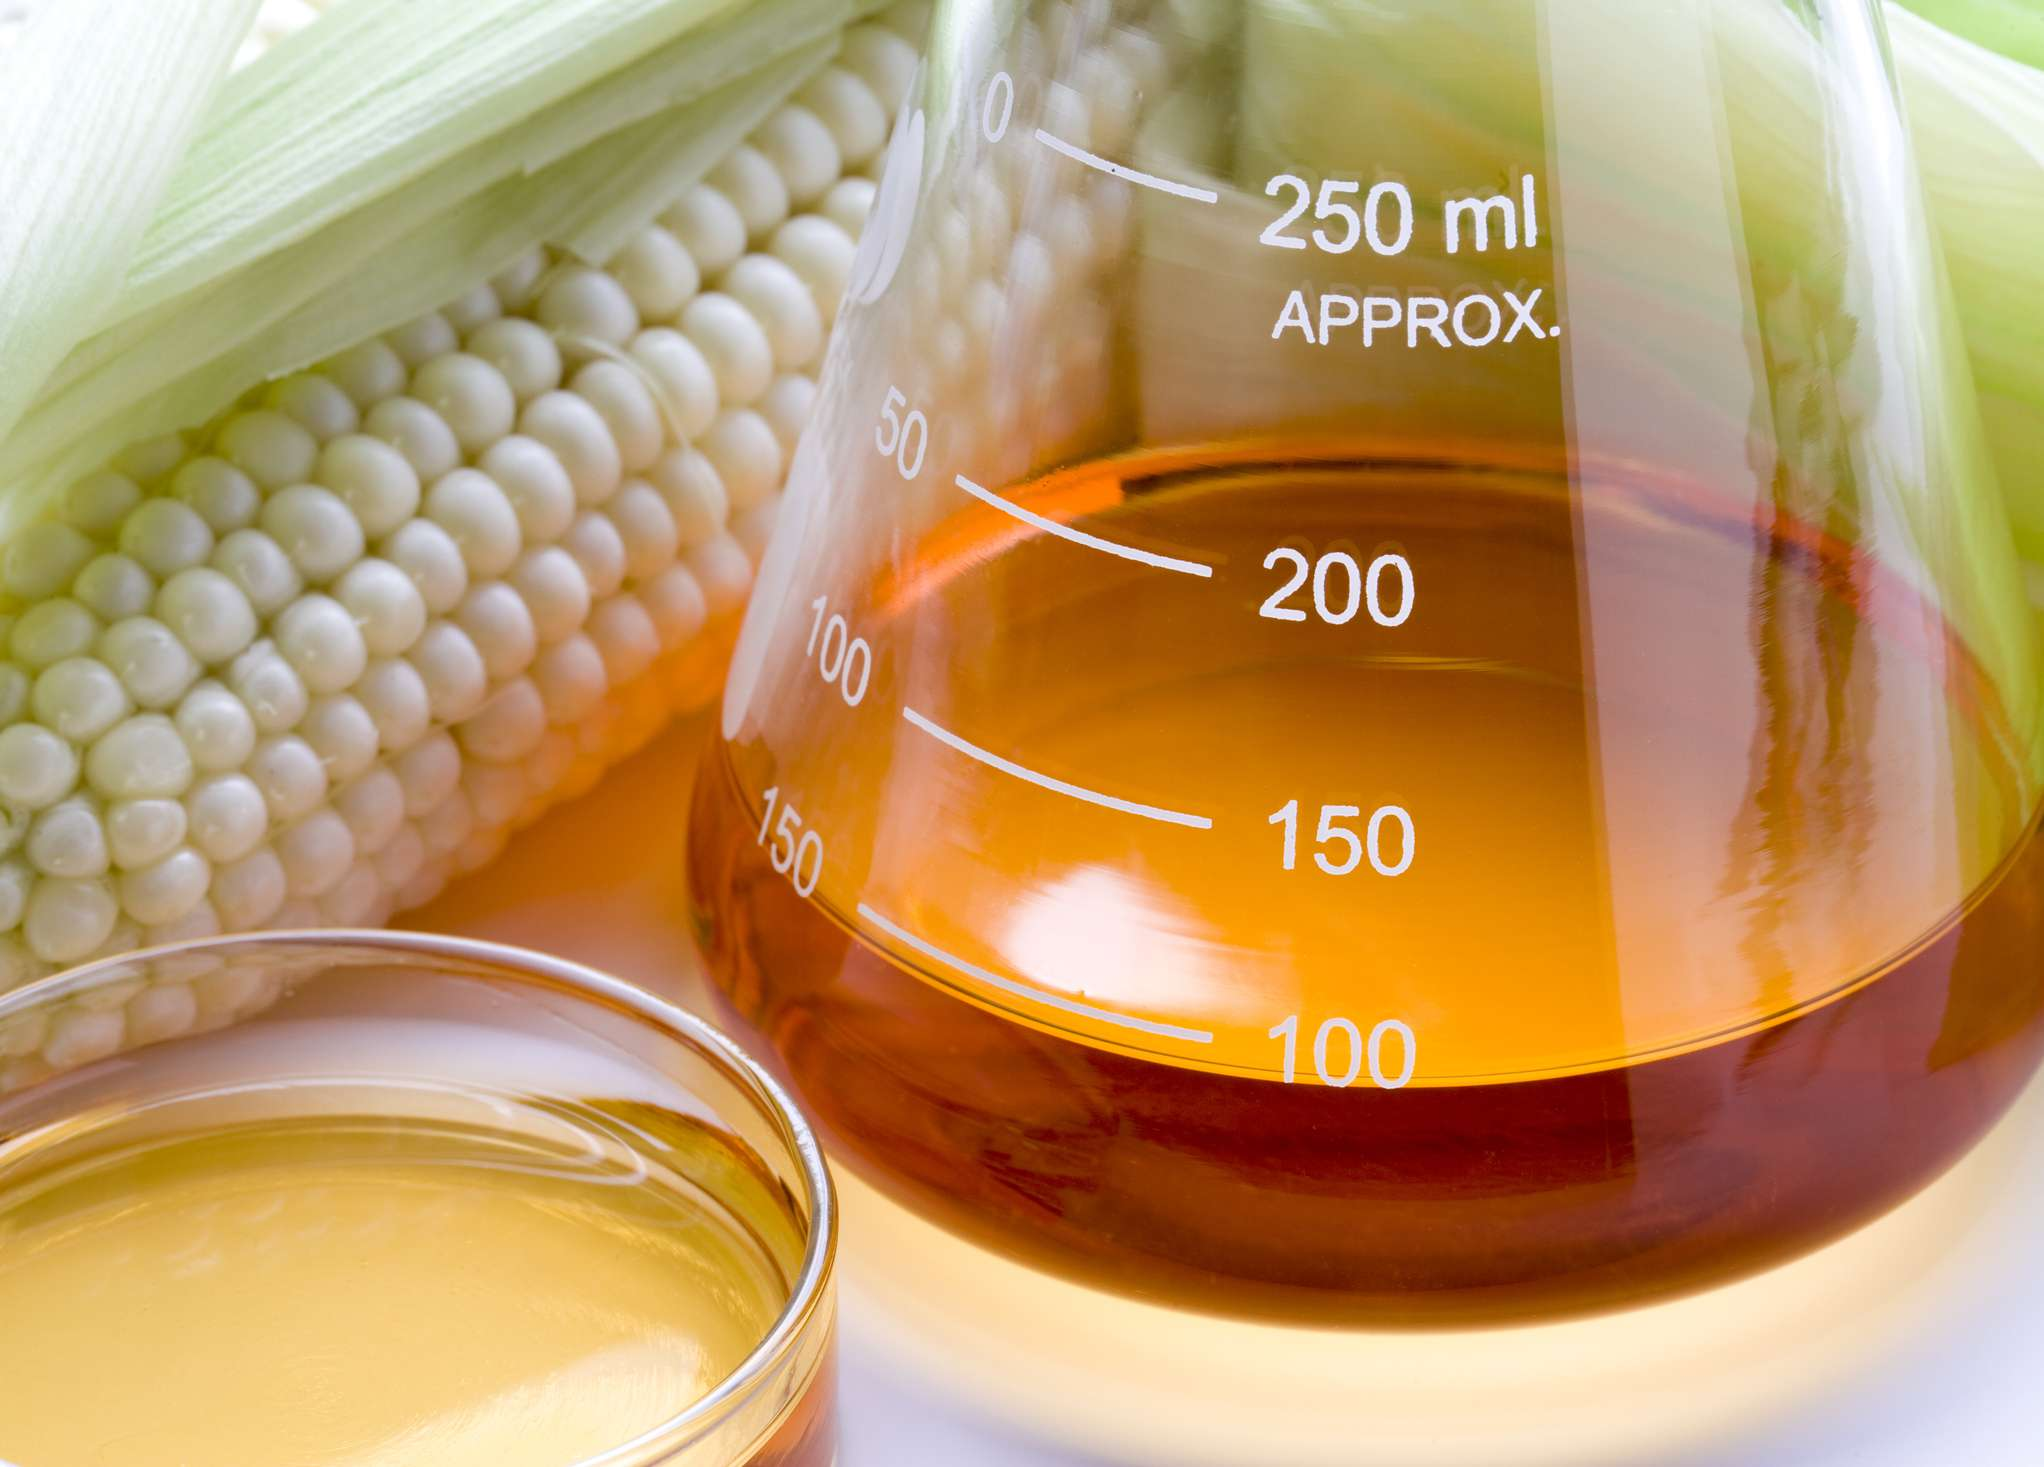 Corn Syrup and lab equipment